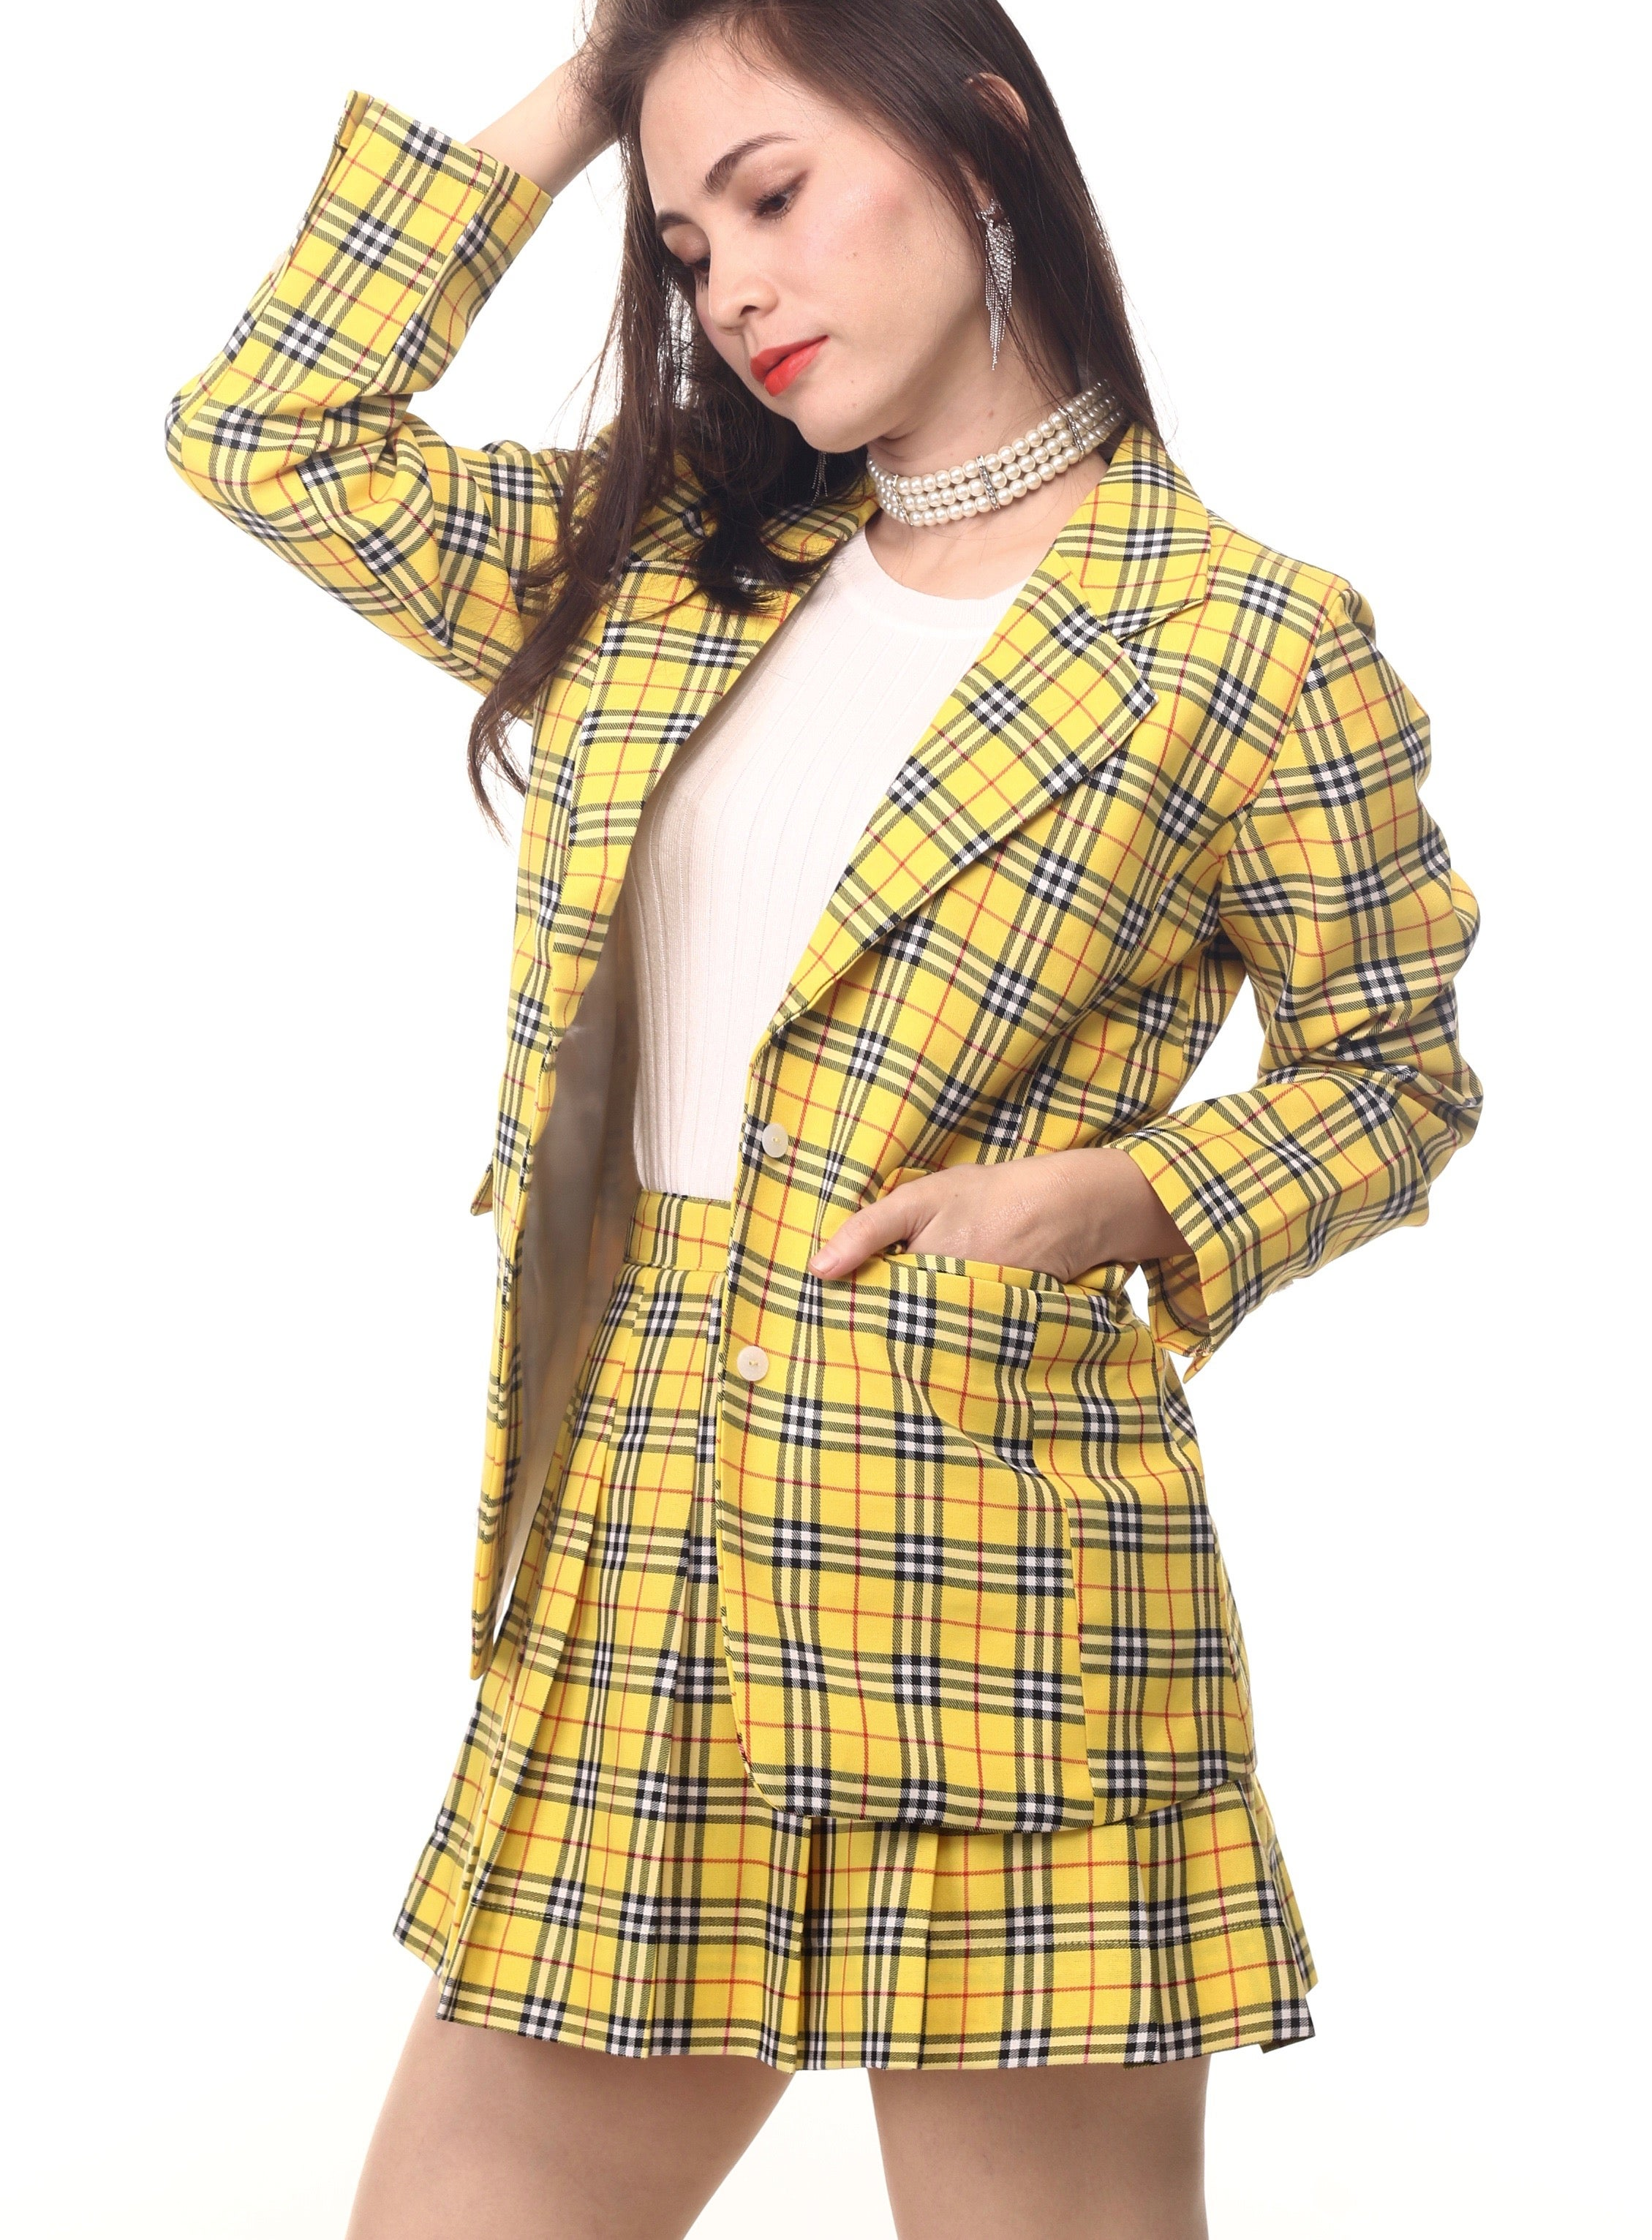 5a136ffc54 Image Of Cher Long Blazer In Yellow Tartan Sc 1 St Glitters For Dinner.  image number 5 of clueless costumes ...